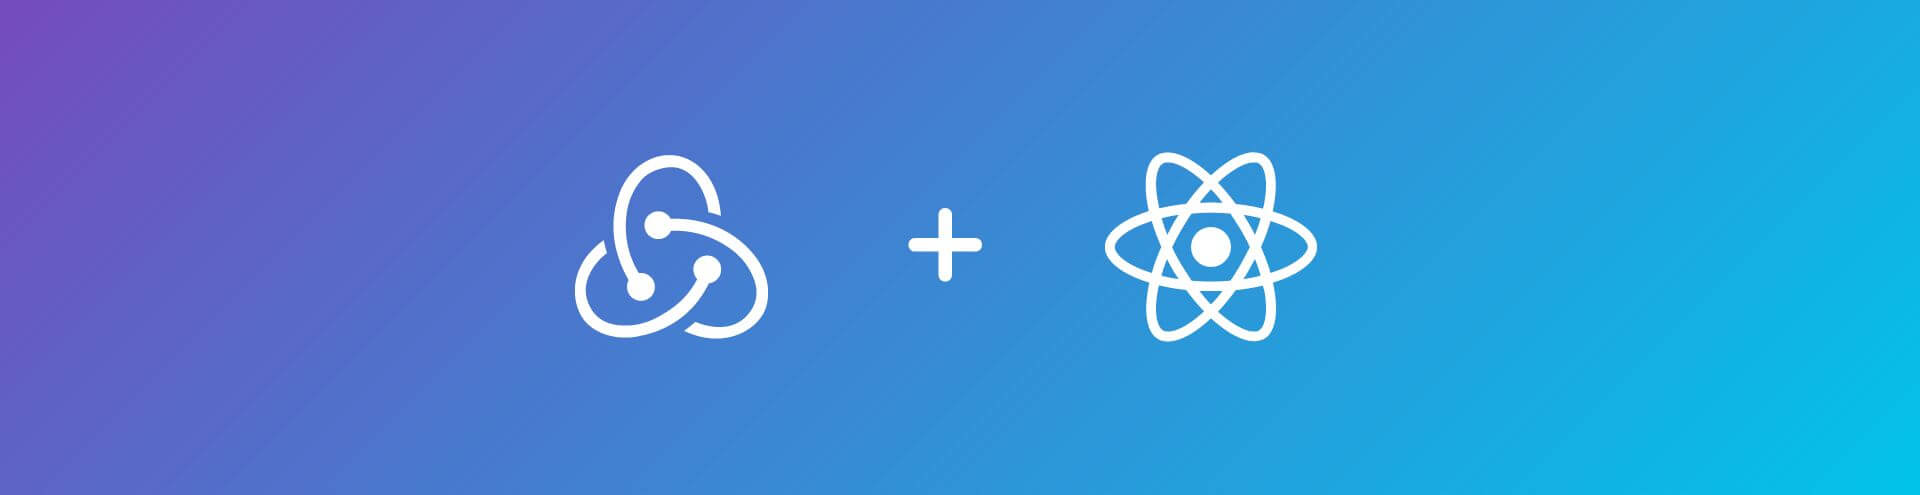 How to Improve React+Redux Code With Redux Thunk Package